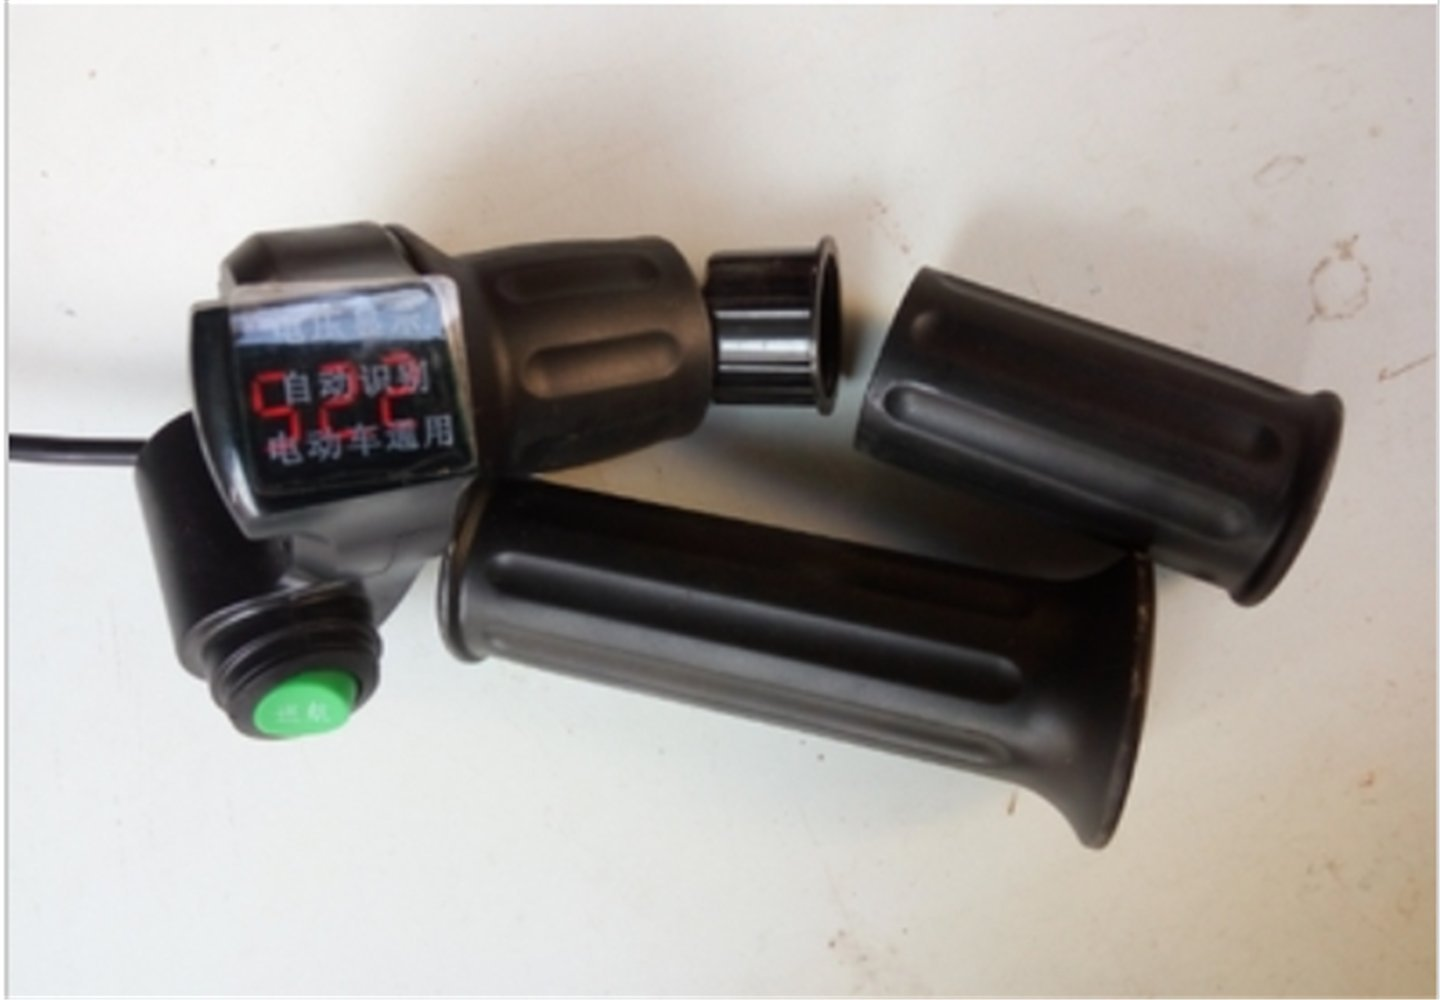 12-120v half twist throttle with Led digital display&cruise switch for electric scooter gas